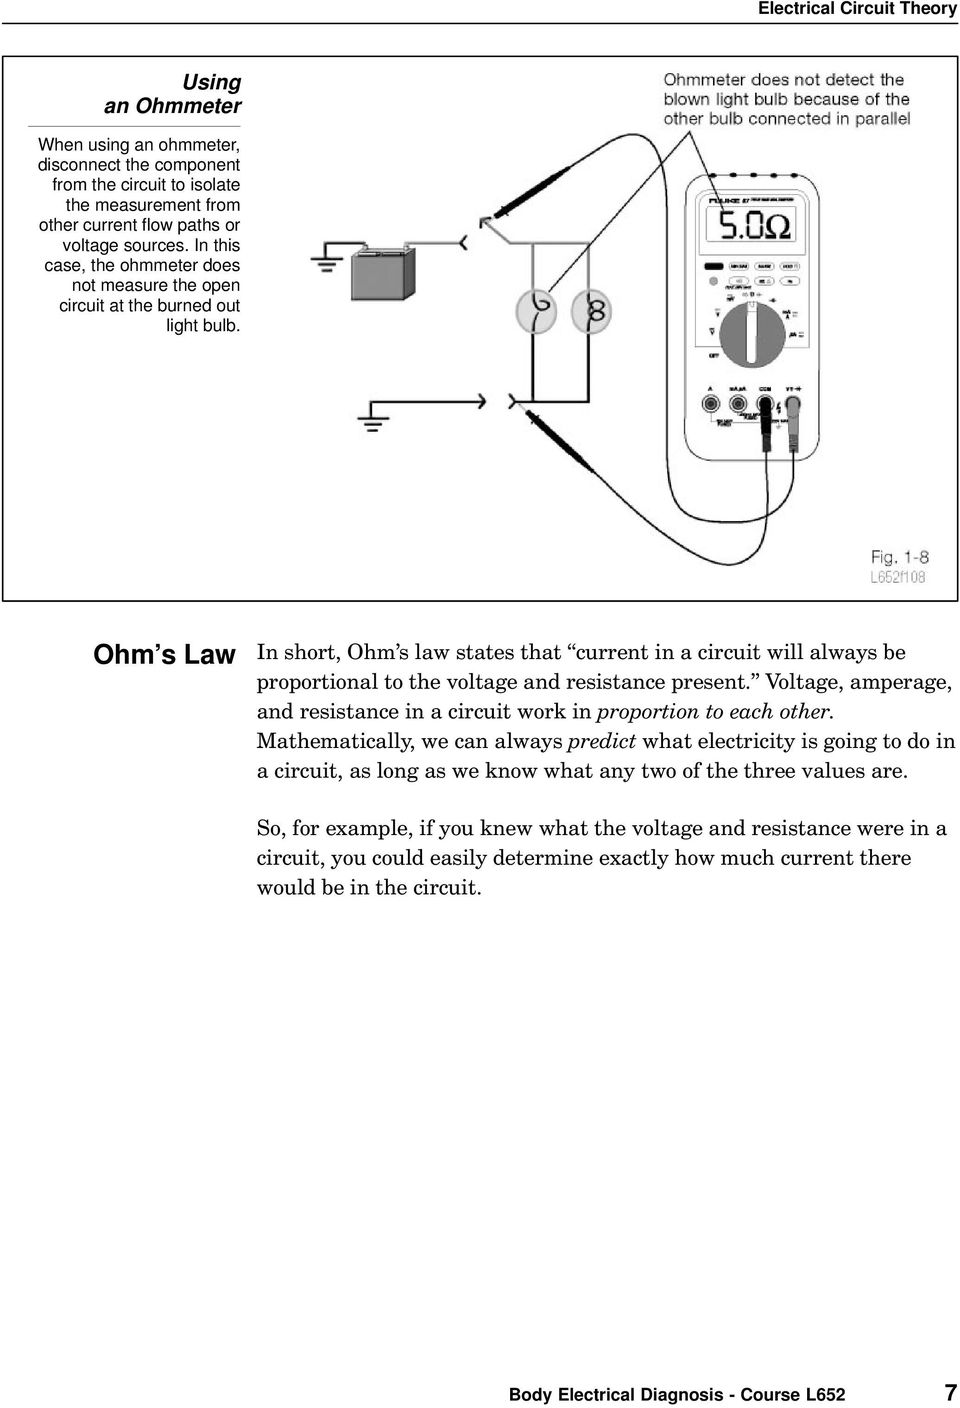 Ohm s Law In short, Ohm s law states that current in a circuit will always be proportional to the voltage and resistance present.